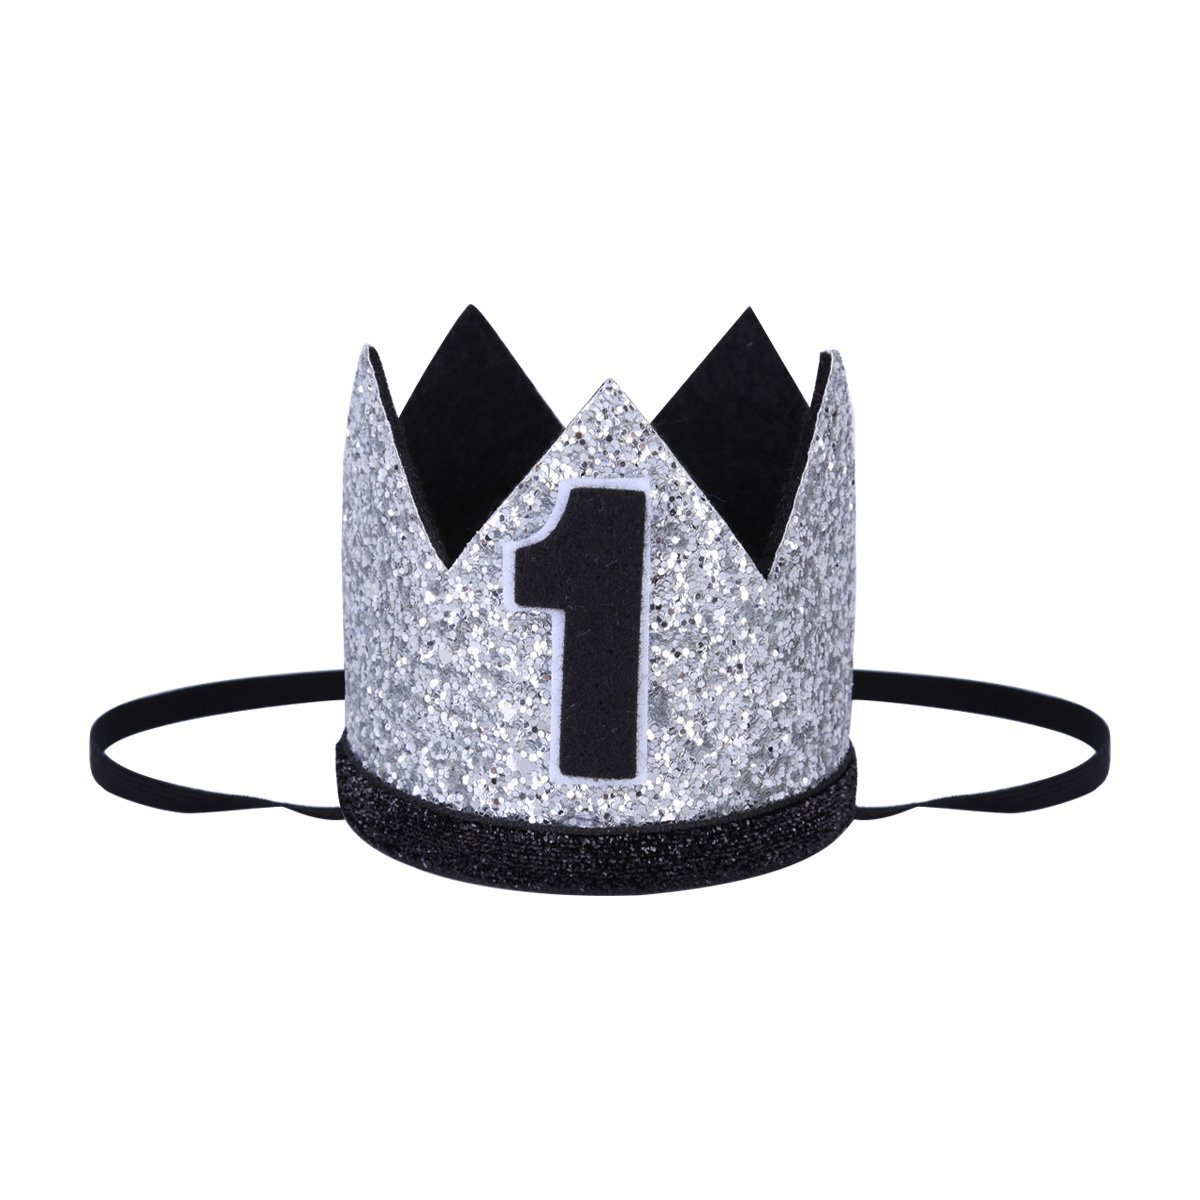 TiaoBug Infant Baby Boys Girls Shiny First Birthday Party Hat Crown Sparkly Elastic Headband Photo Props Silver&Black 1 One Size